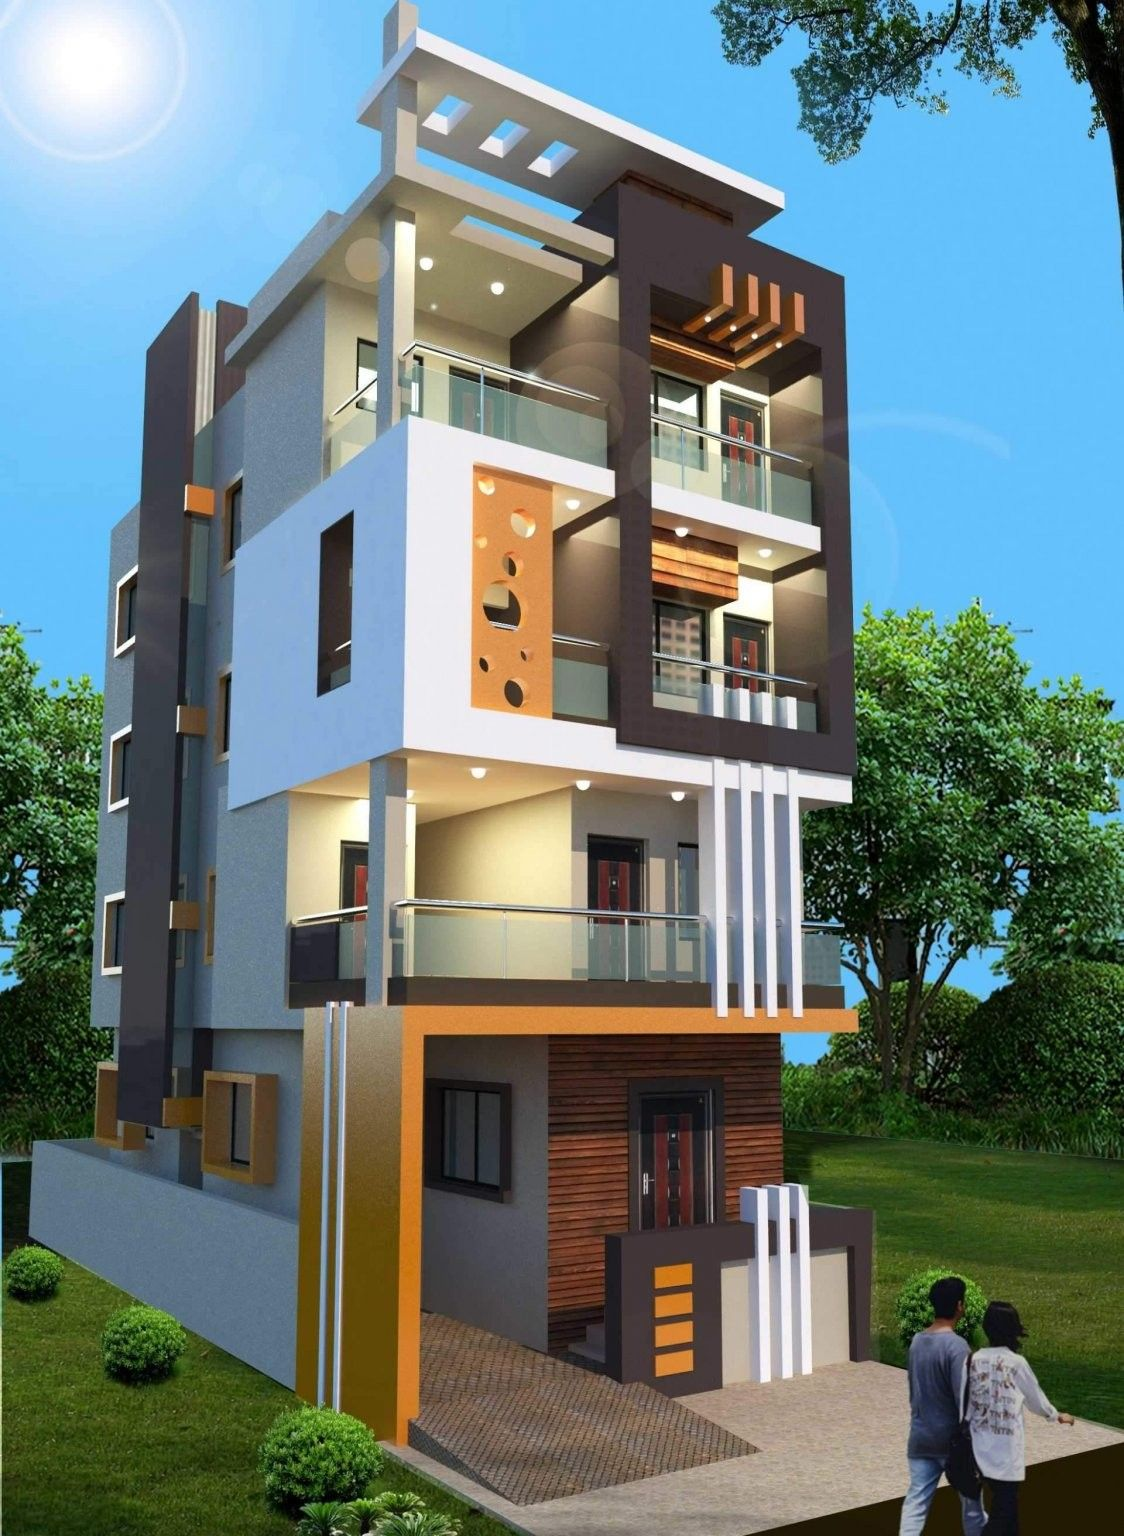 Small House Elevation Design Small House Design Exterior Narrow: Small House Elevation Design, Duplex House Design